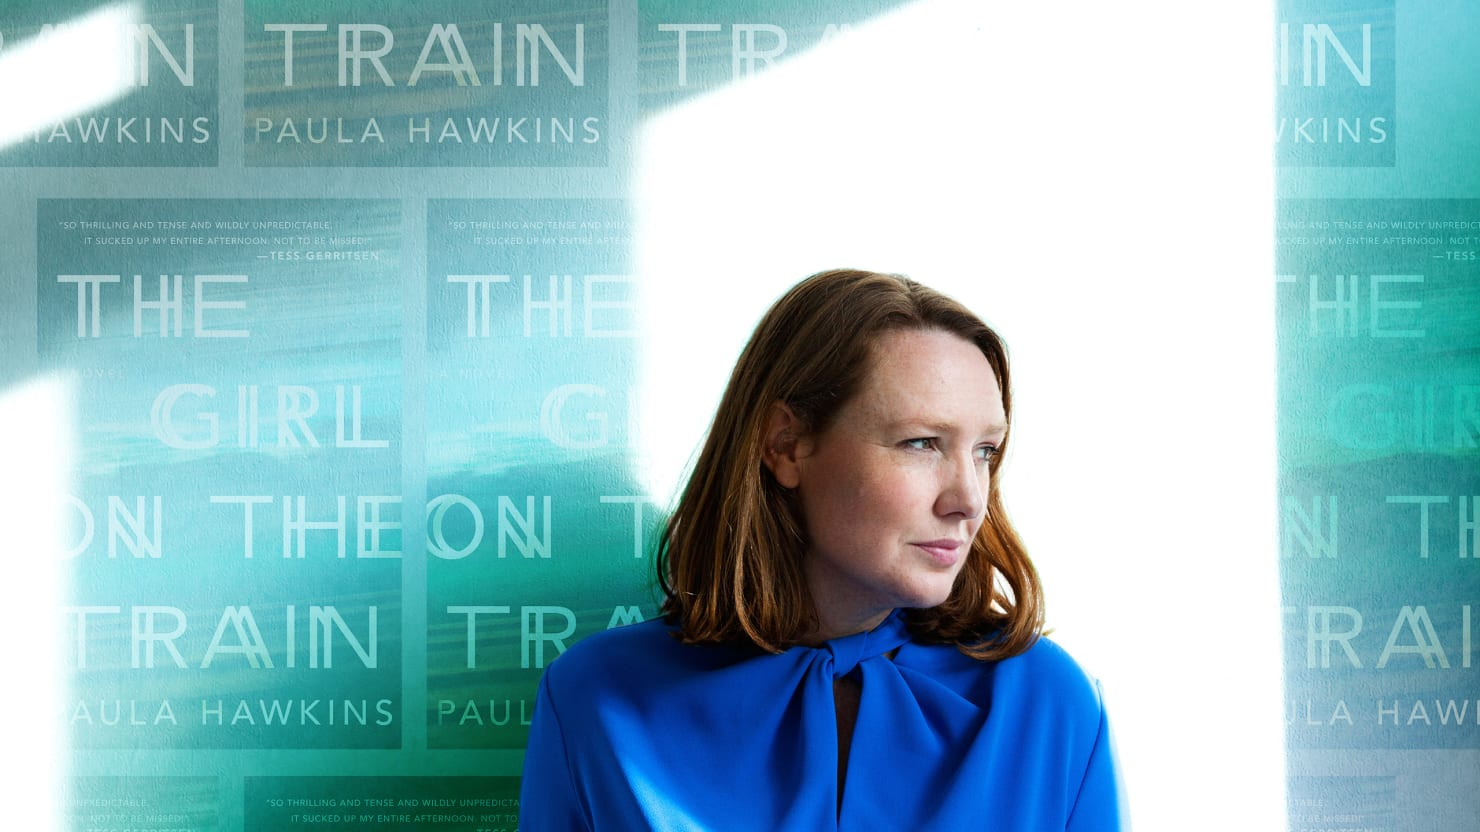 The Fastest Selling Adult Novel in History  Paula Hawkins   The Girl     Dreamworks just bought the movie rights  Your book club is definitely  reading it  Author Paula Hawkins discusses her debut mega hit  The Girl on  the Train